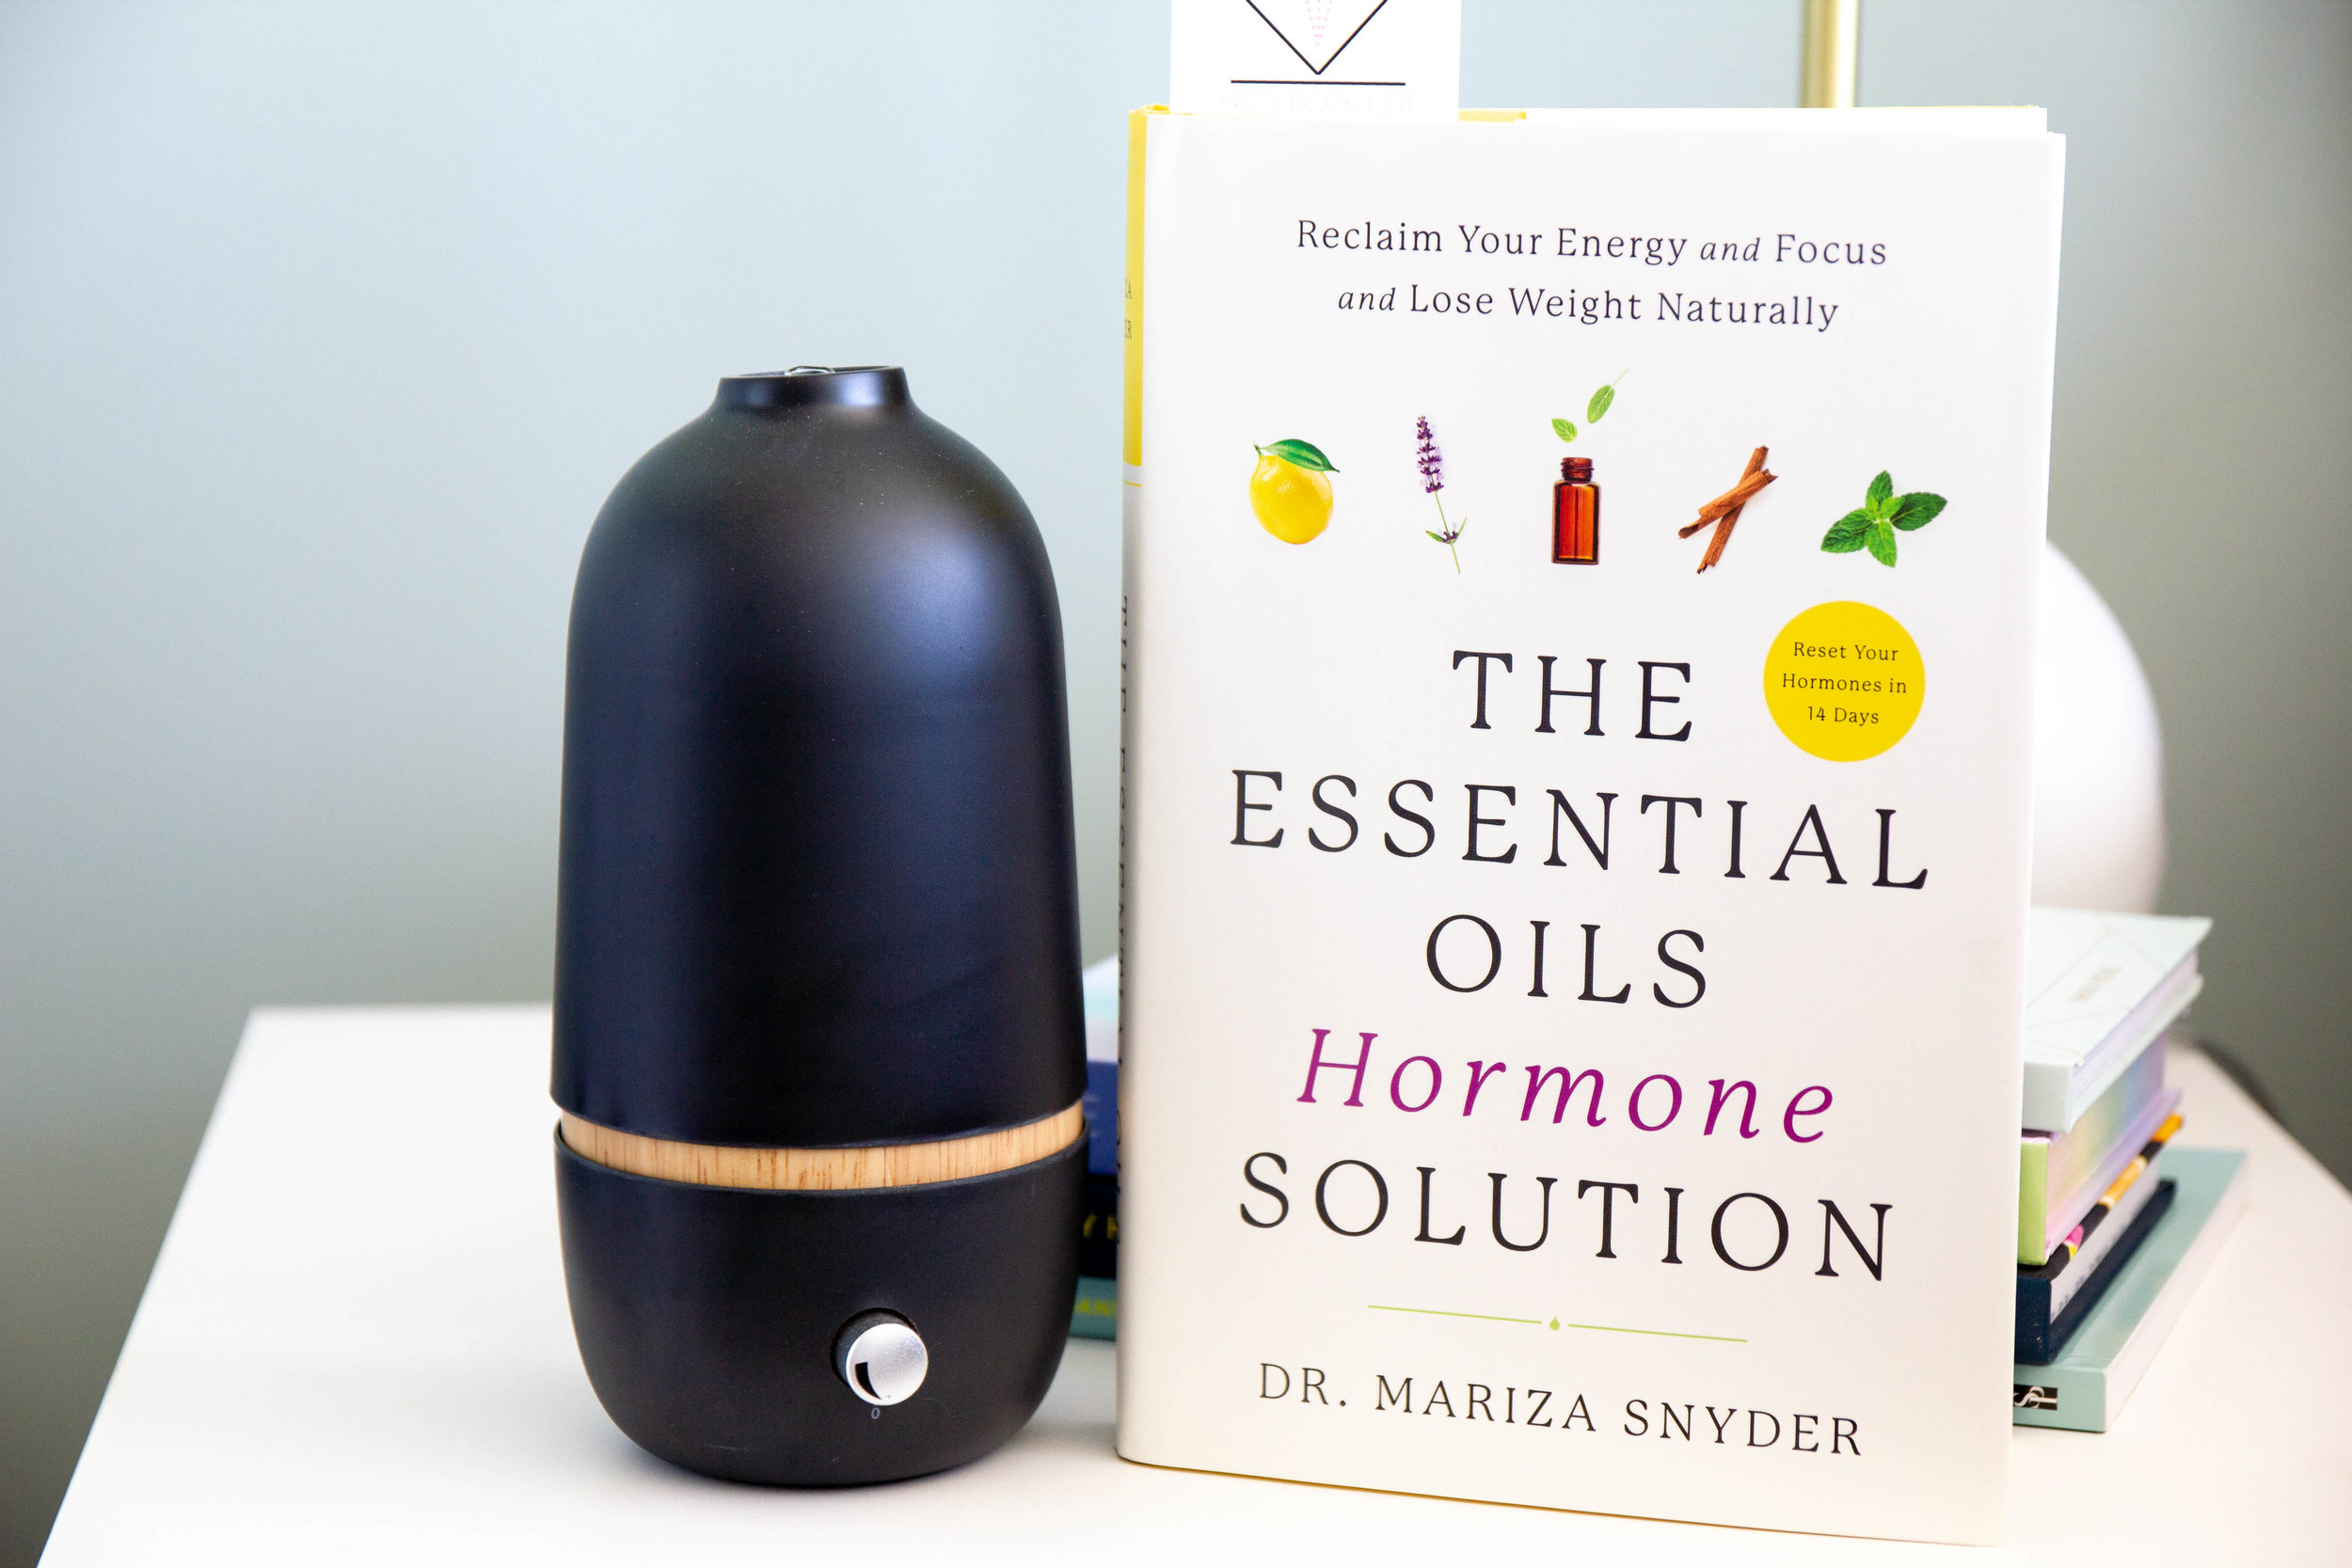 5 Books to Read About Essential Oils-6.jpg